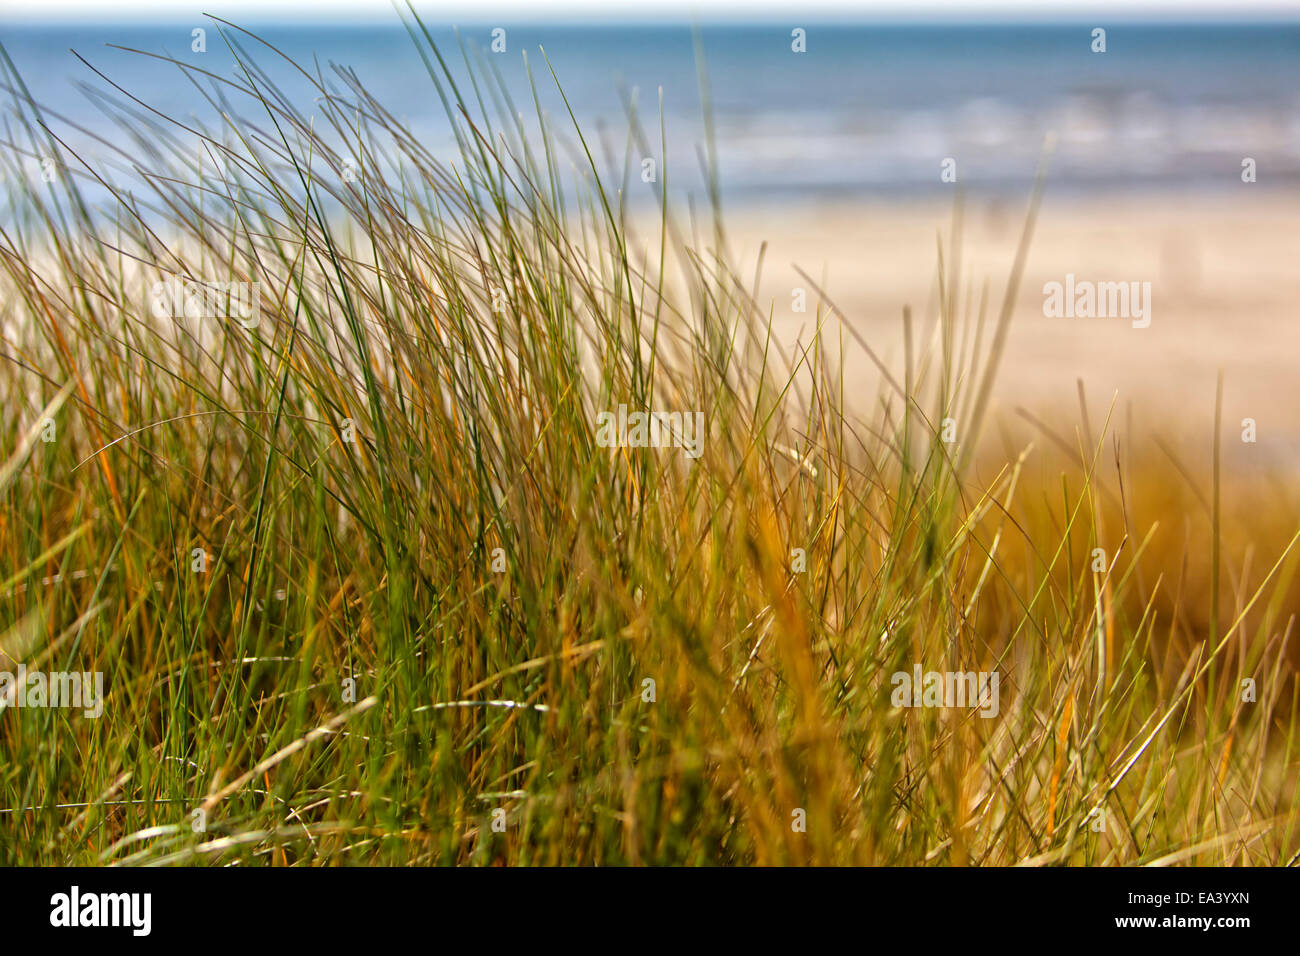 North Sea coast dune grass in the wind - Stock Image